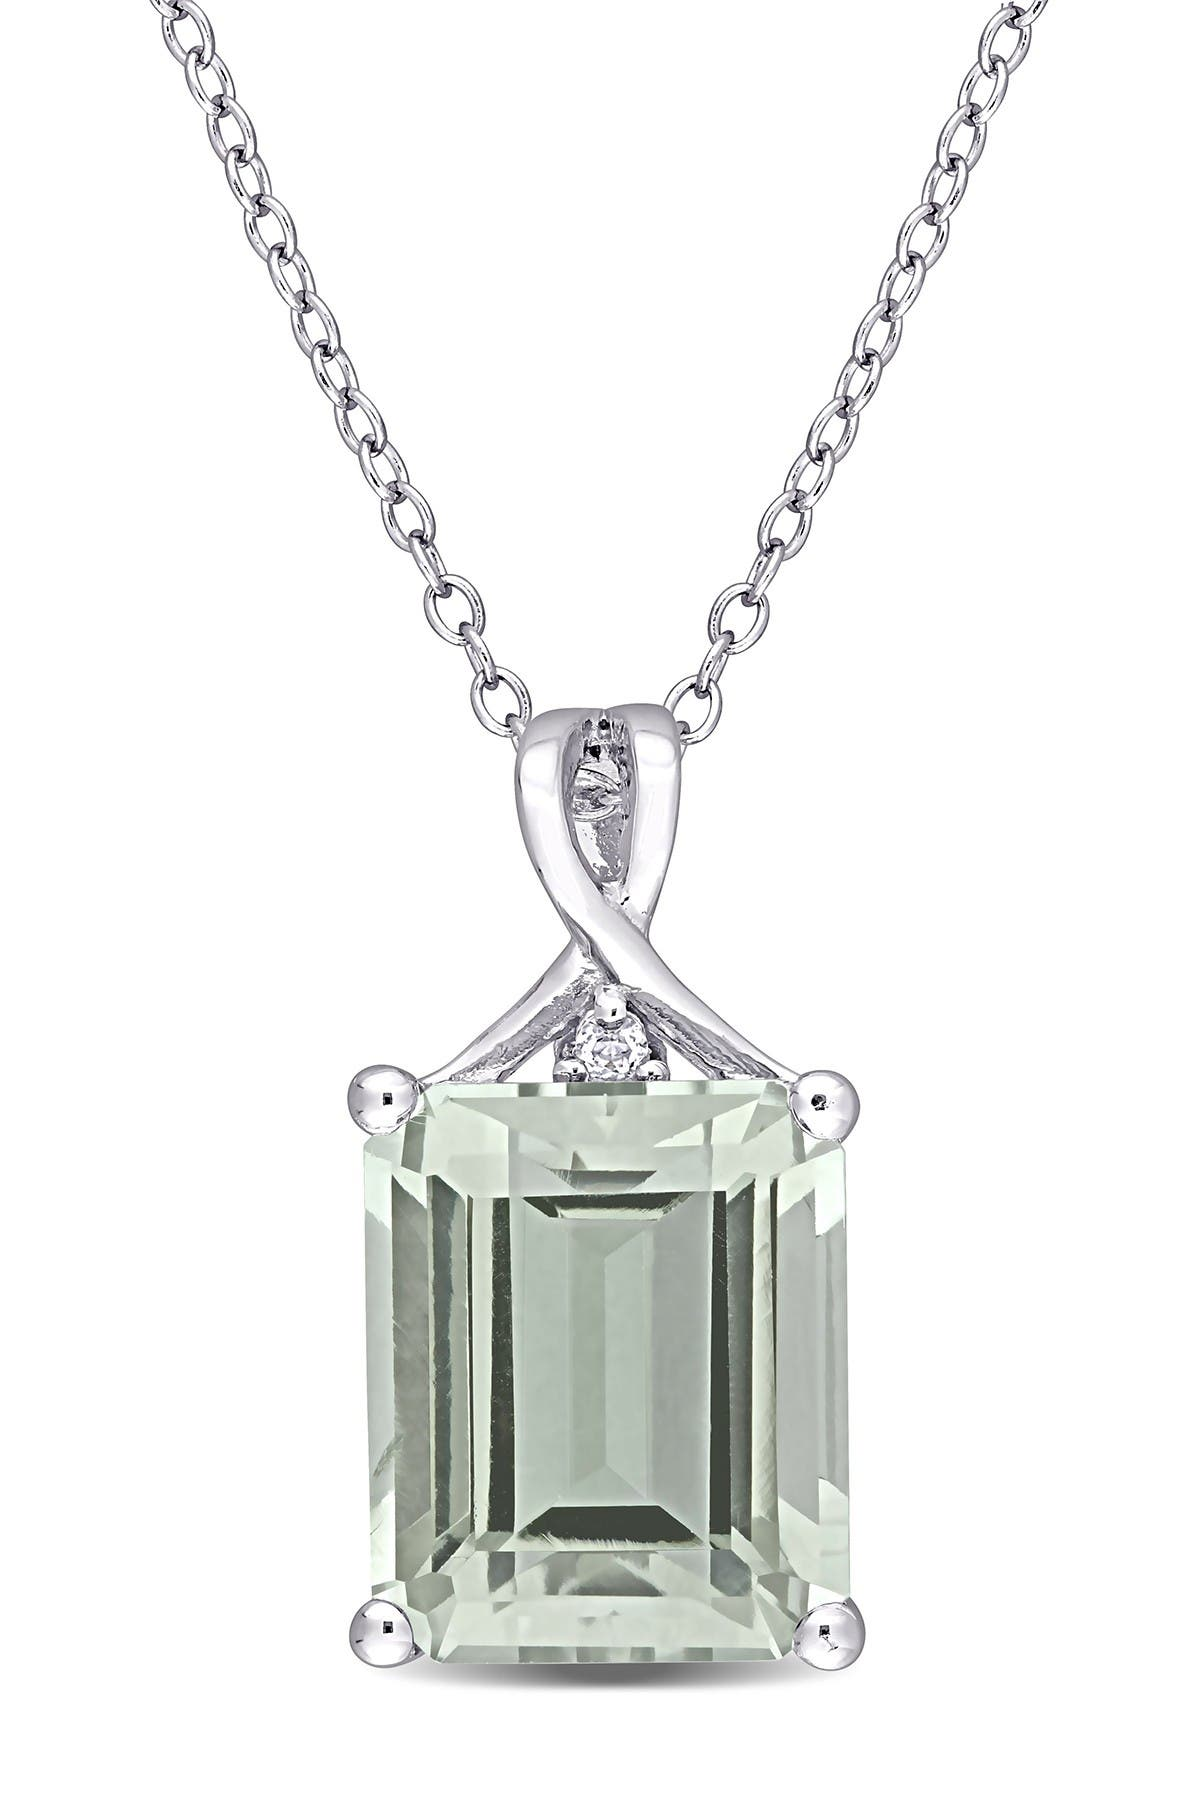 Image of Delmar Sterling Silver Baguette Cut Green Quartz Pendant Necklace